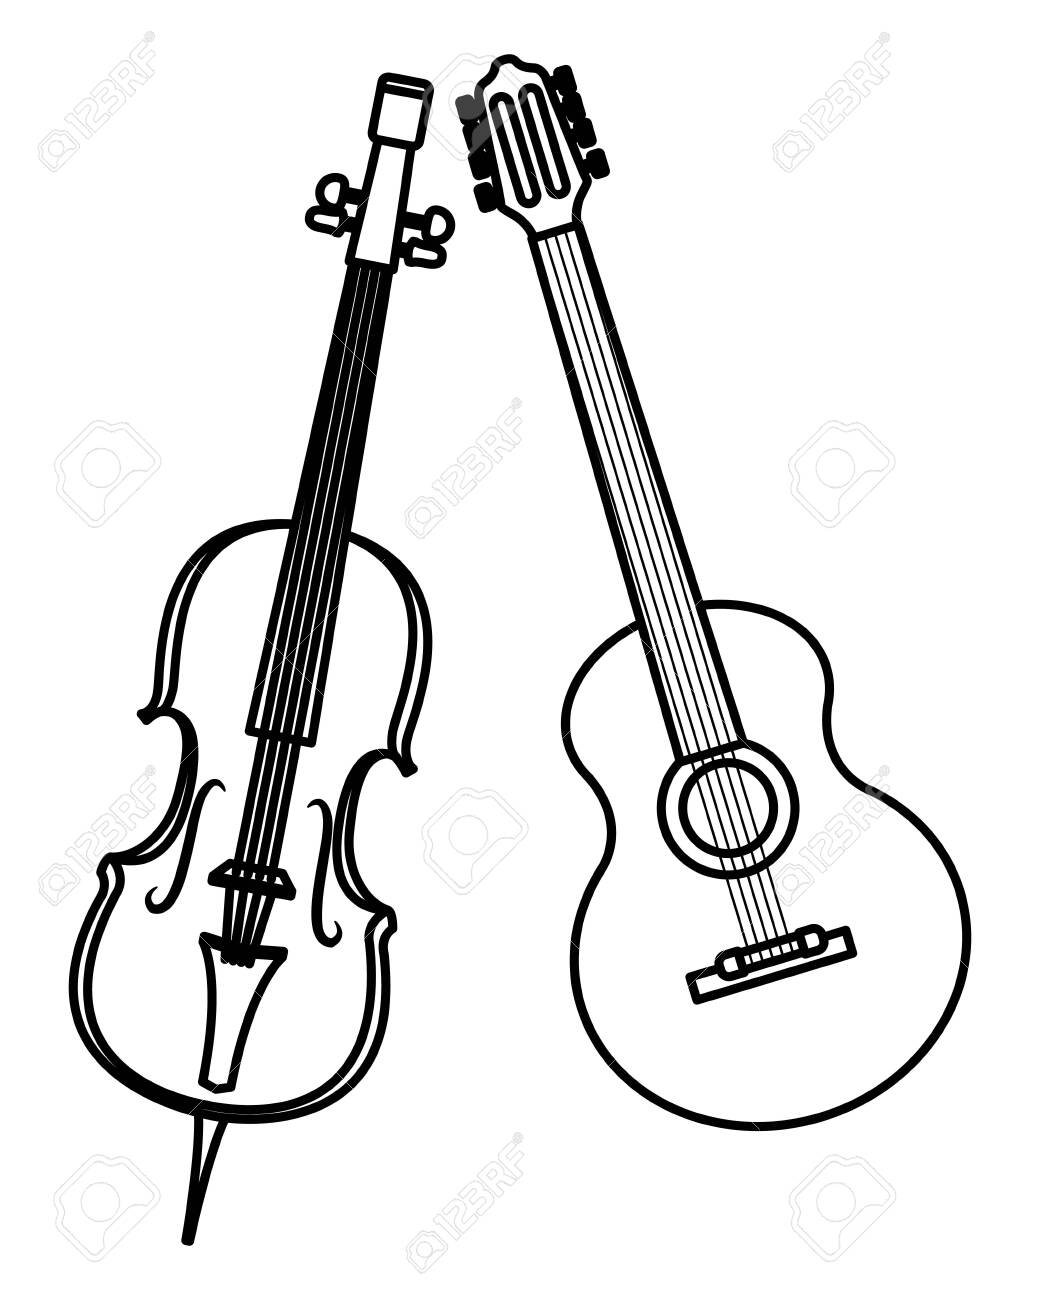 Violin And Guitar Icon Cartoon Black And White Vector Illustration Royalty Free Cliparts Vectors And Stock Illustration Image 122618890